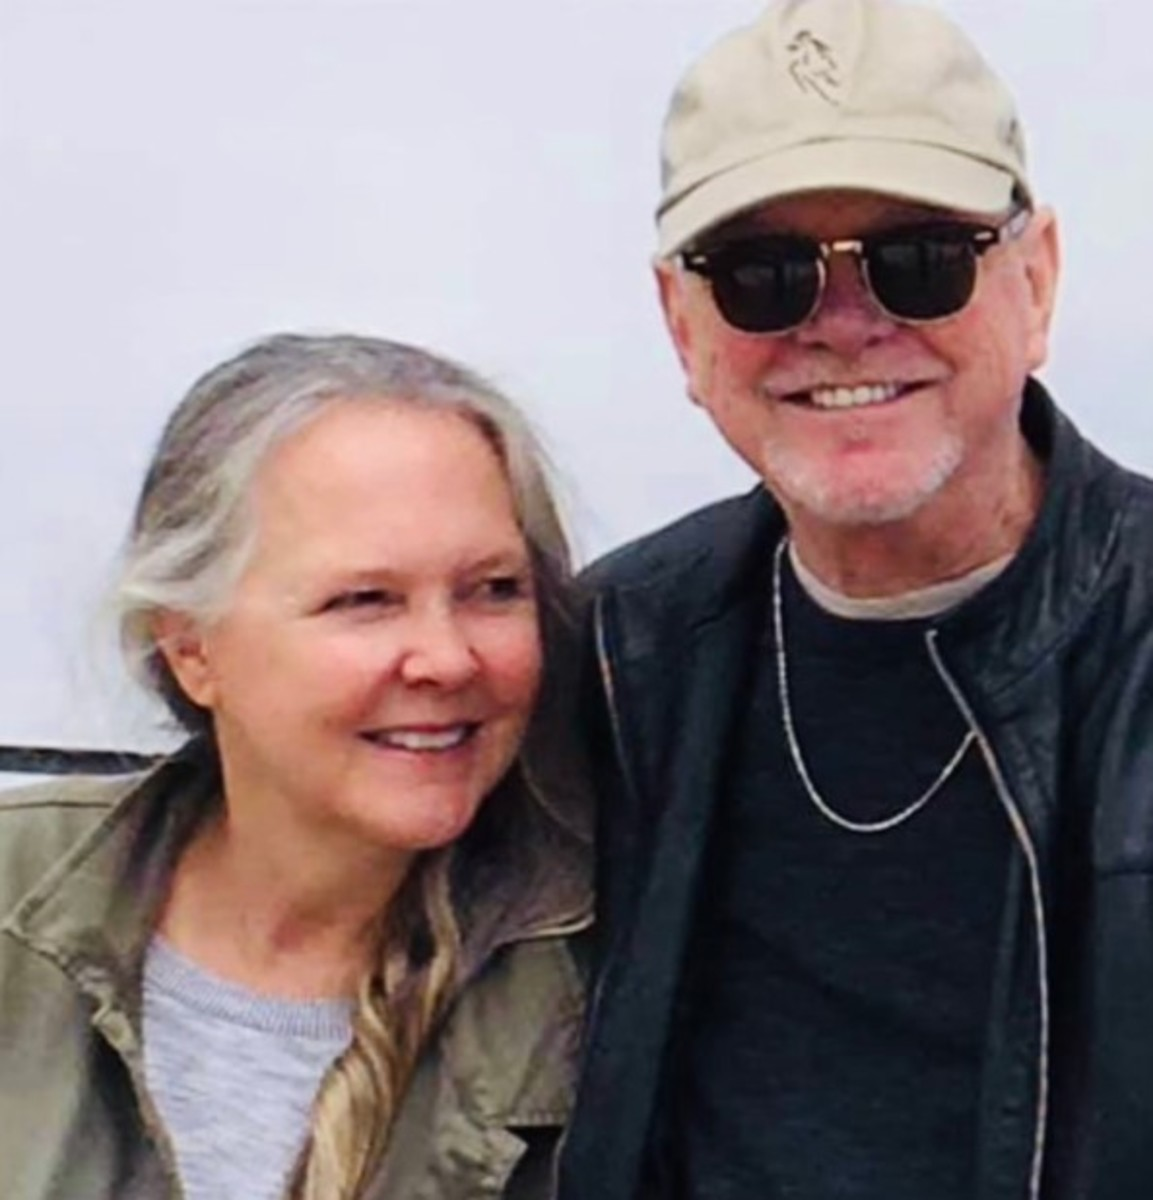 Mary and Rusty Young, photo courtesy of Blue Élan Records